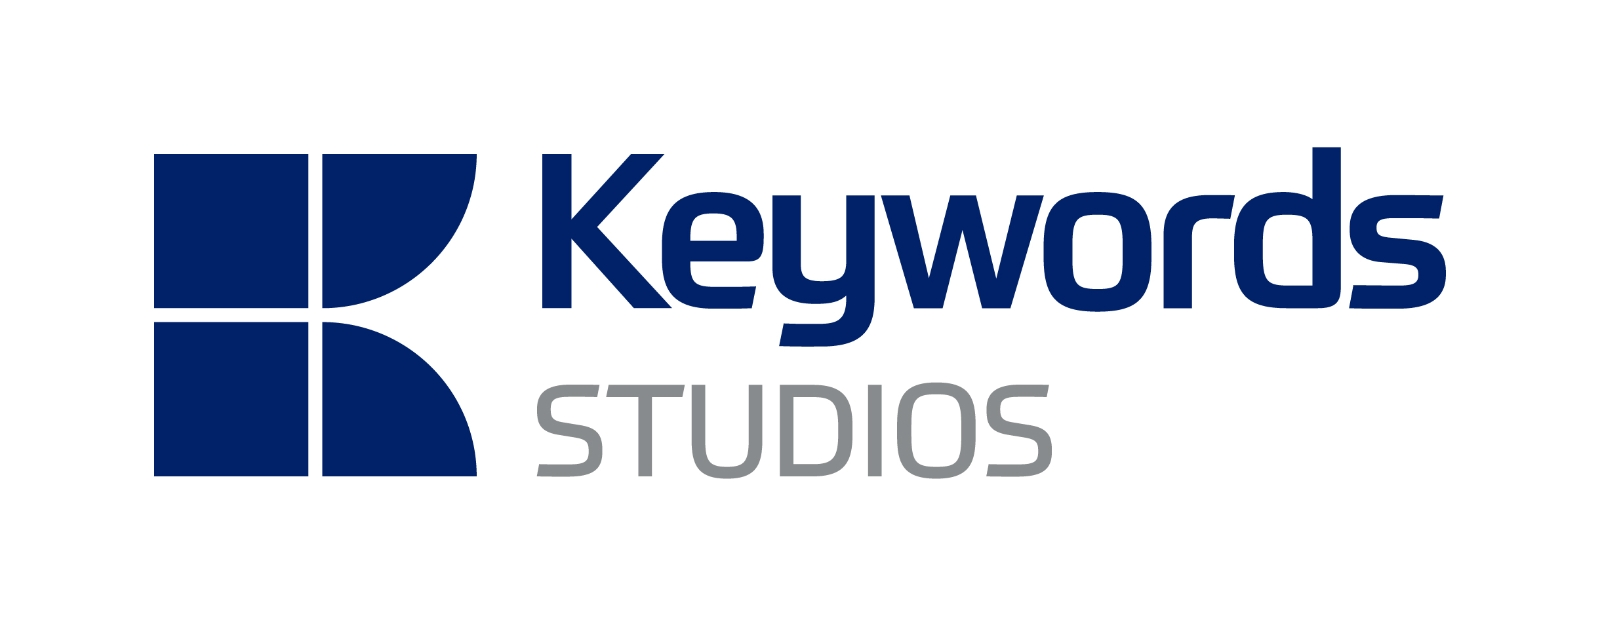 KEYWORDS INTERNATIONAL PTE. LTD.